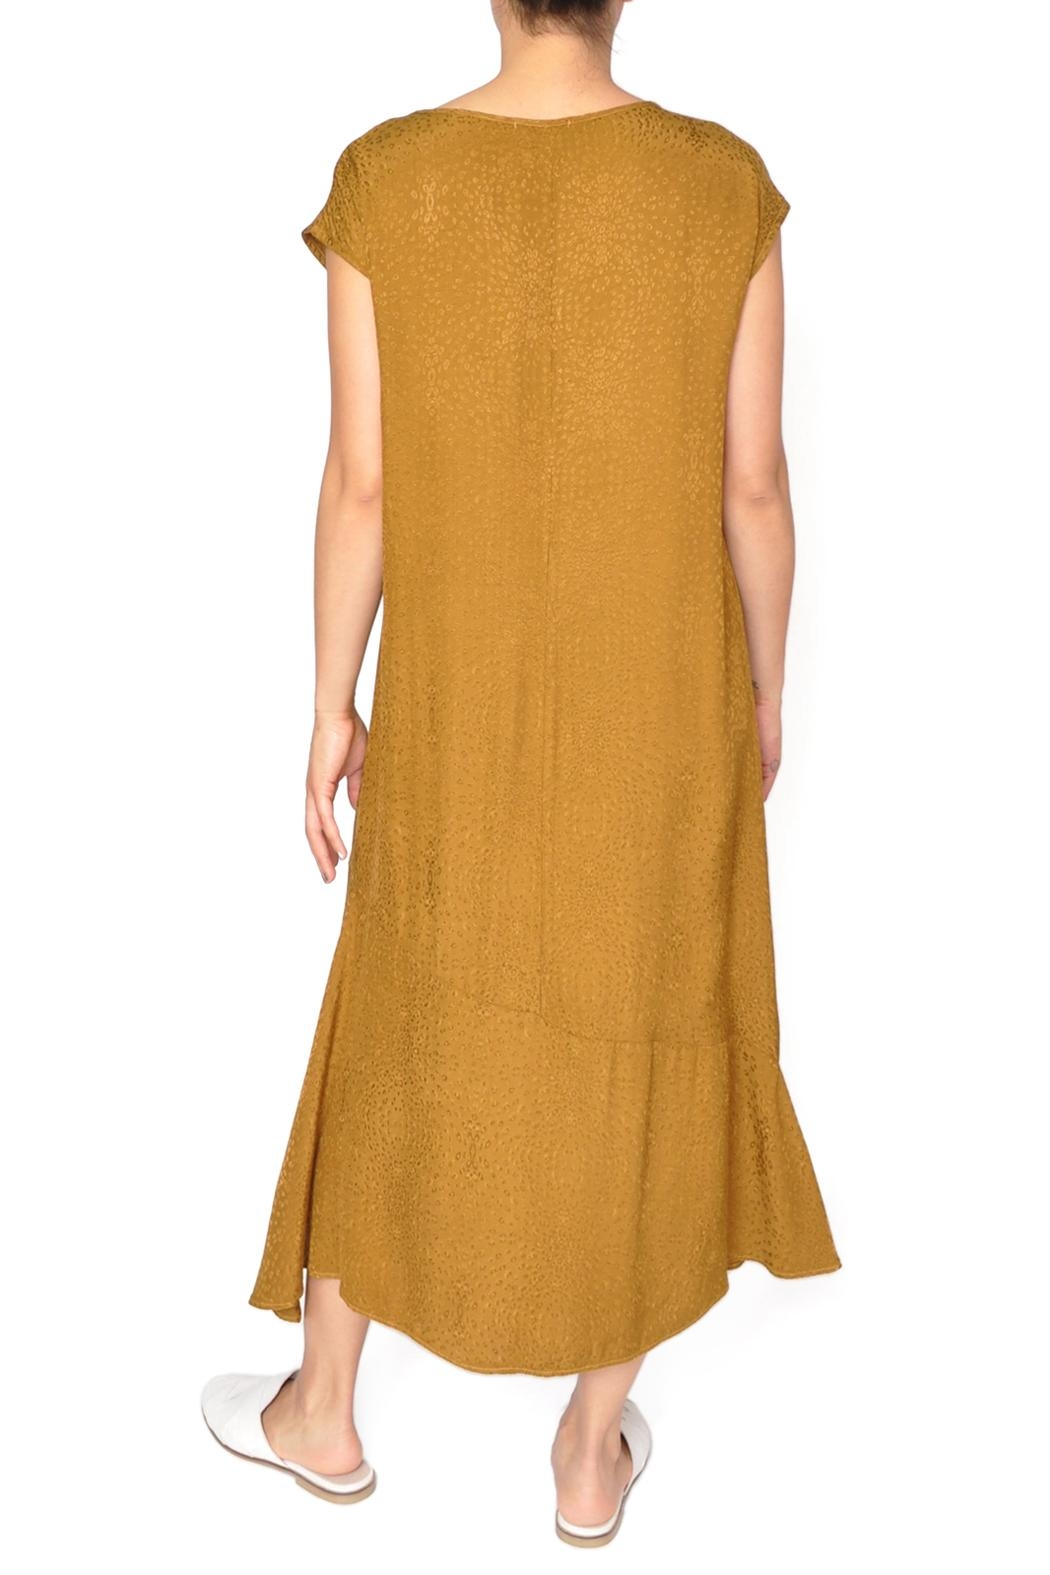 LACAUSA Yellow Flapper Dress - Side Cropped Image